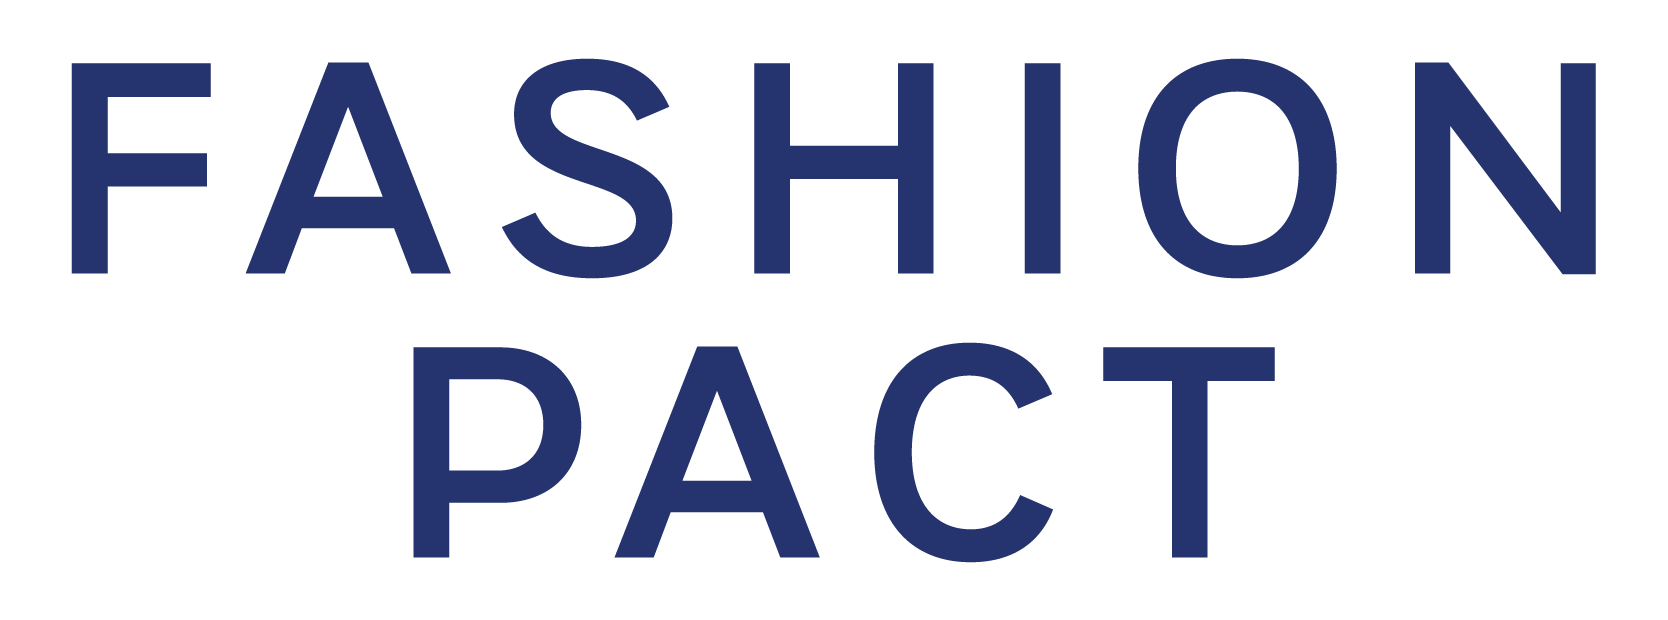 FashionPact-logo_Plan